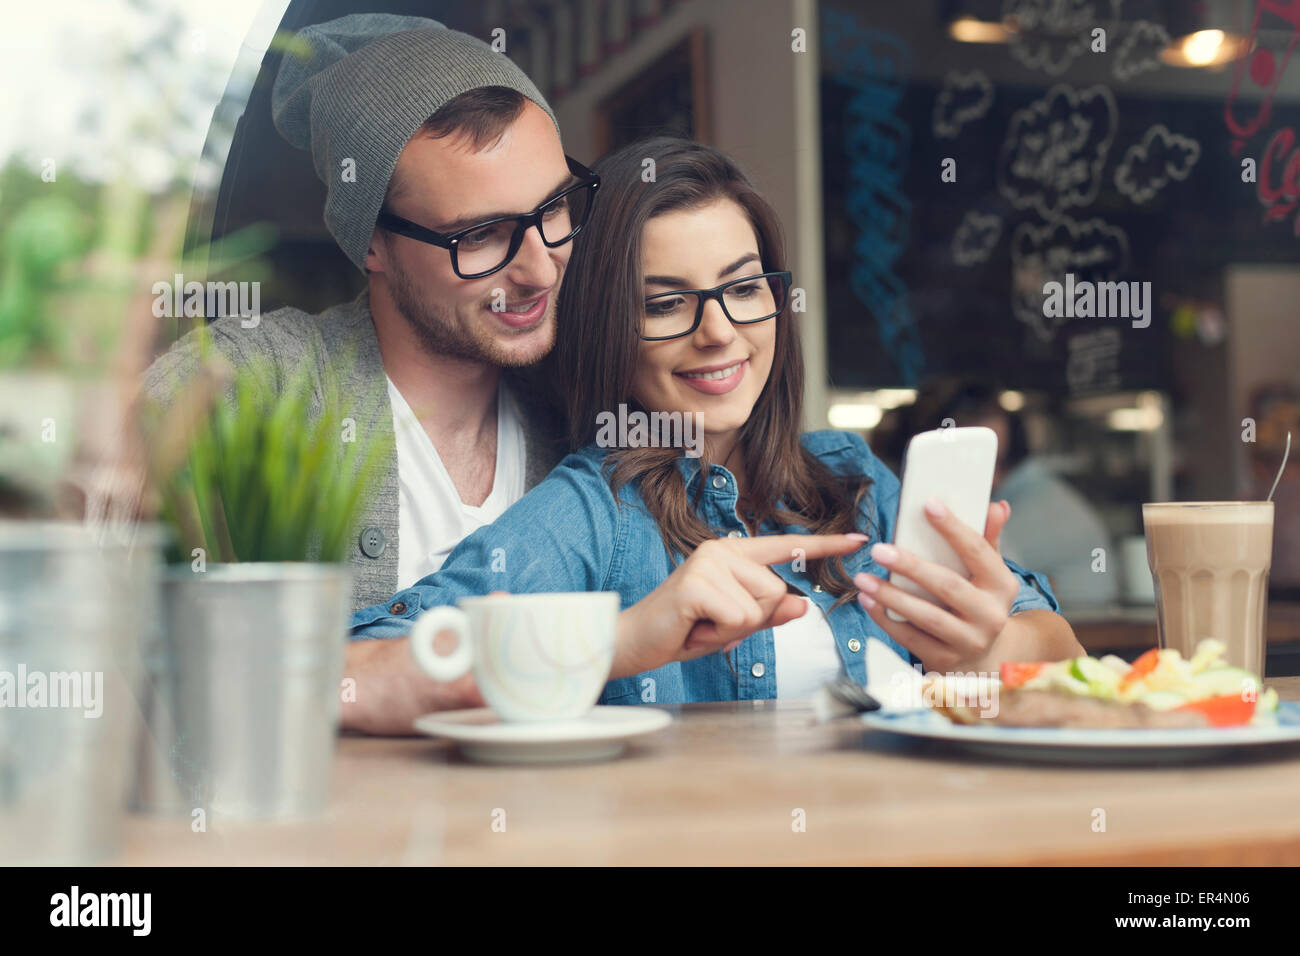 Embracing couple using mobile phone in cafe. Krakow, Poland - Stock Image